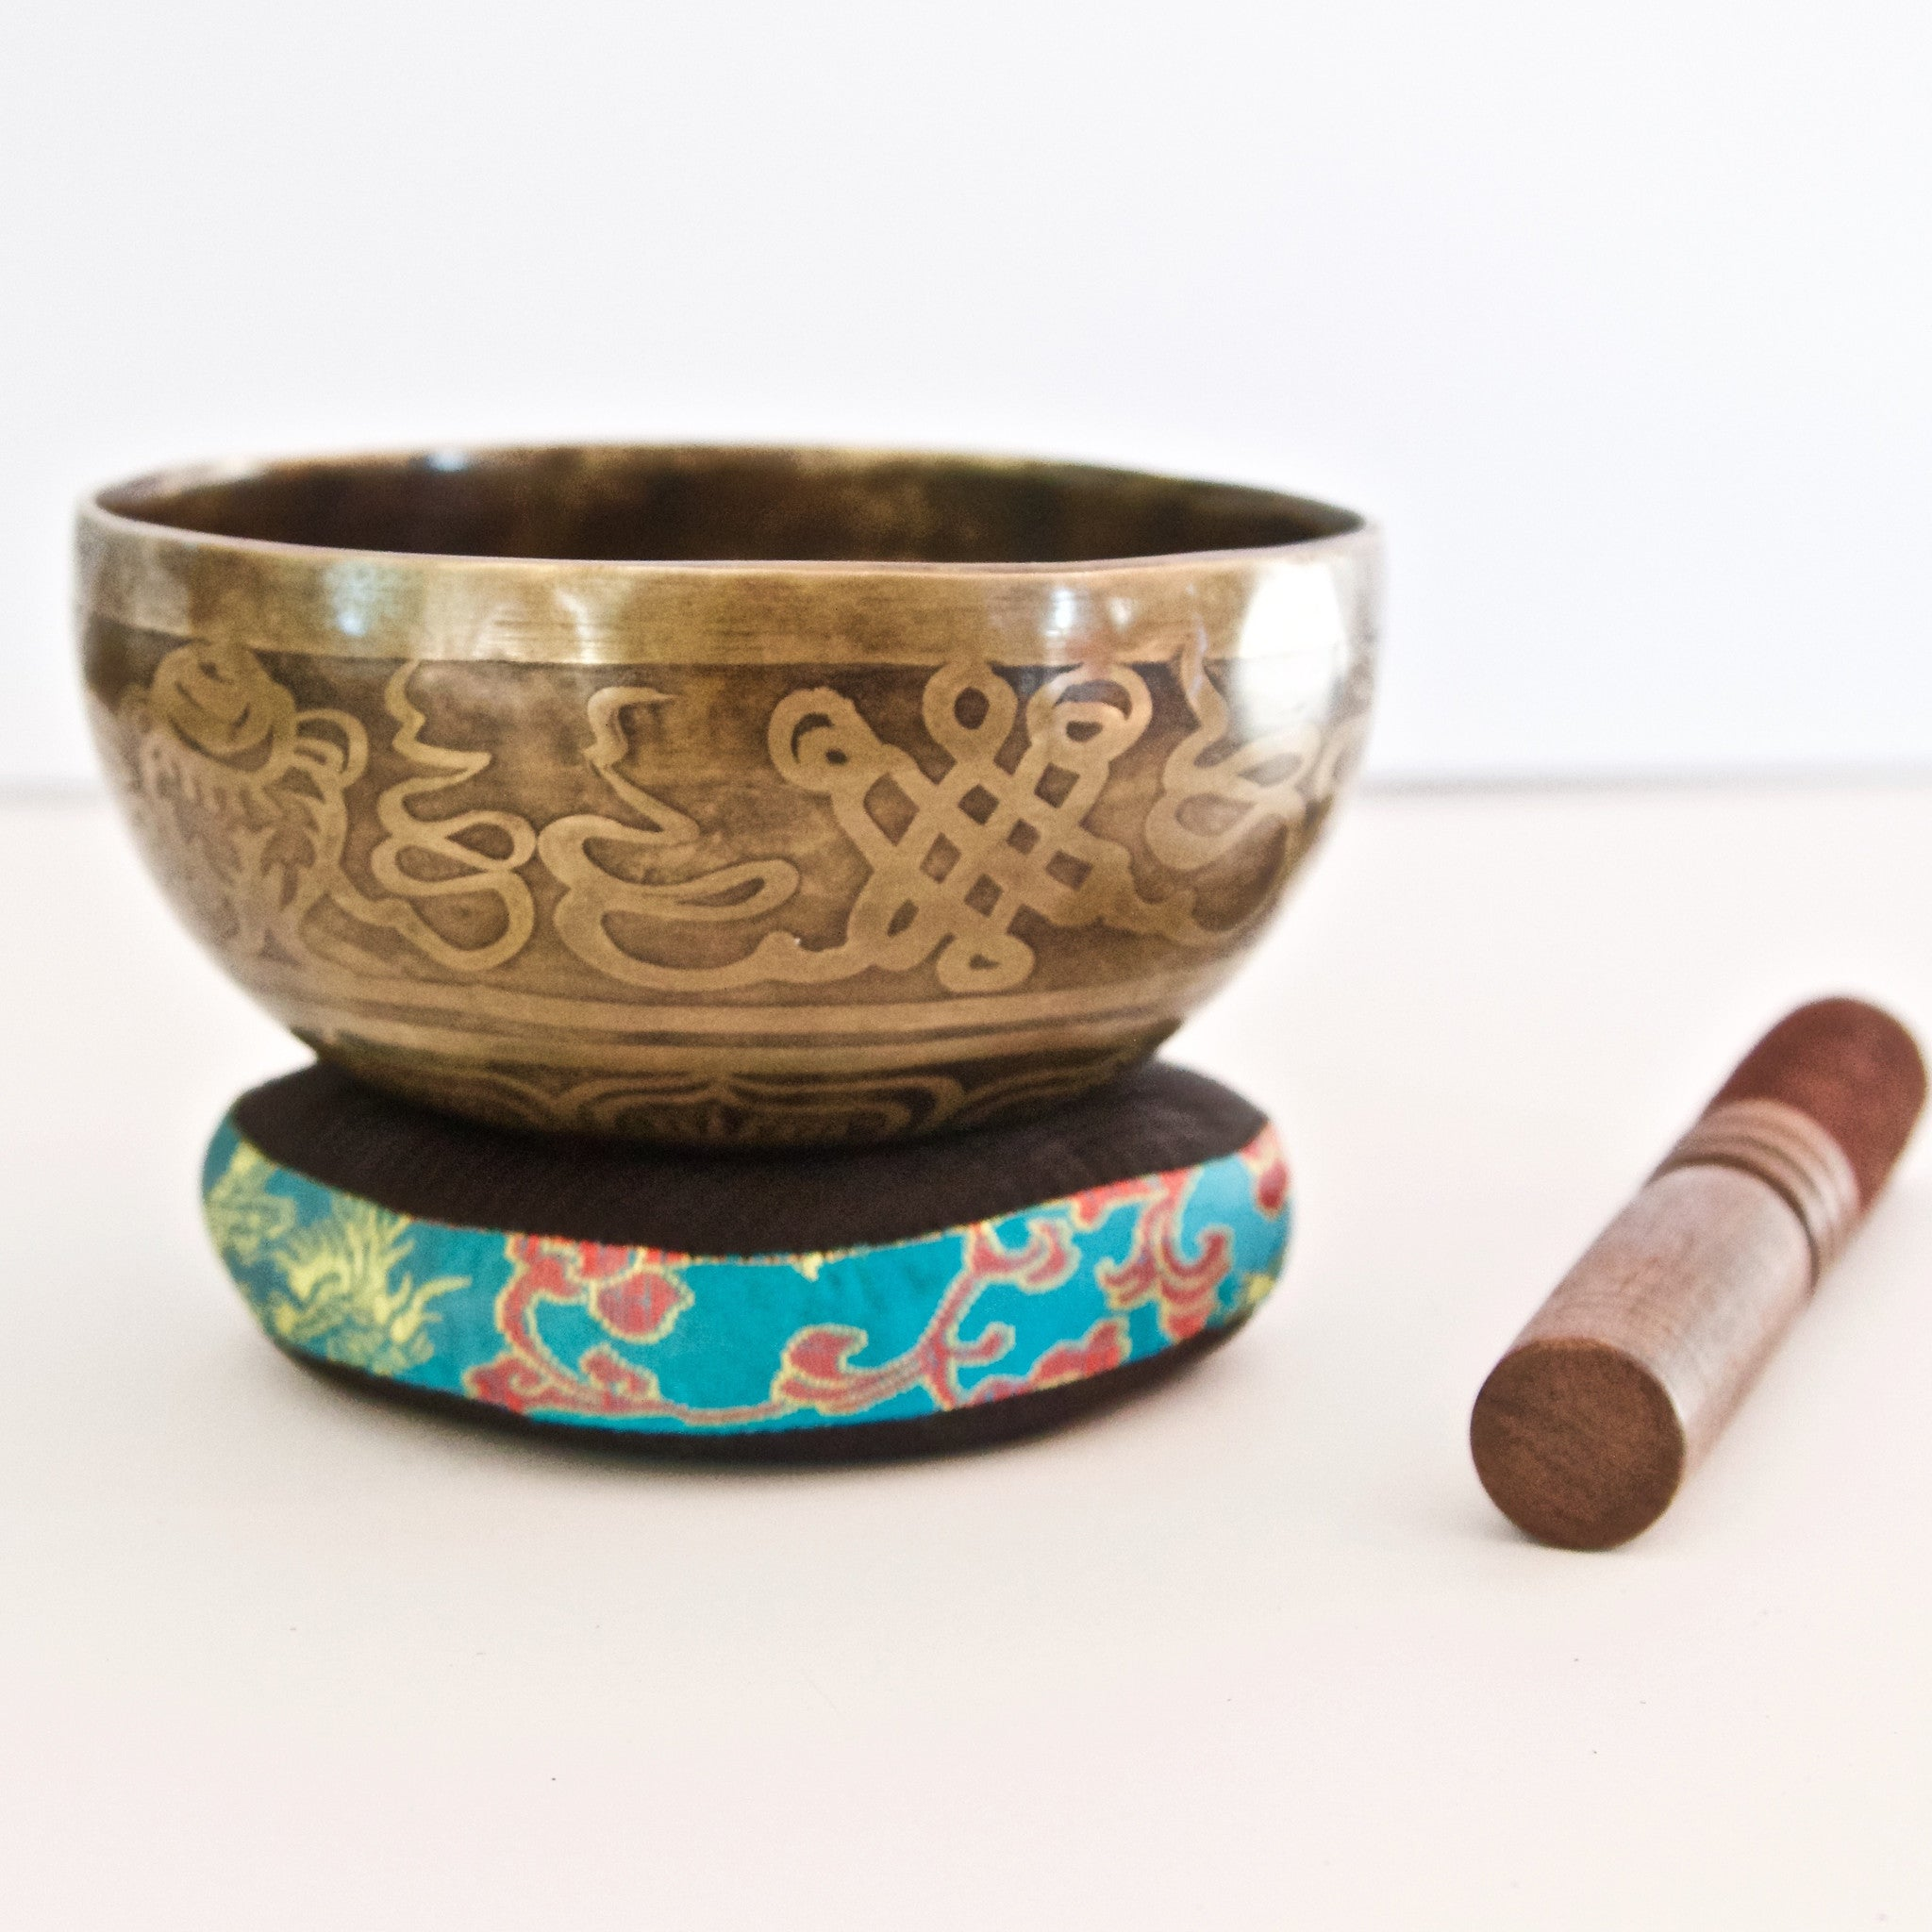 Hand Hammered Singing Bowl with 8 Auspicious Symbols in Calligraphy Style